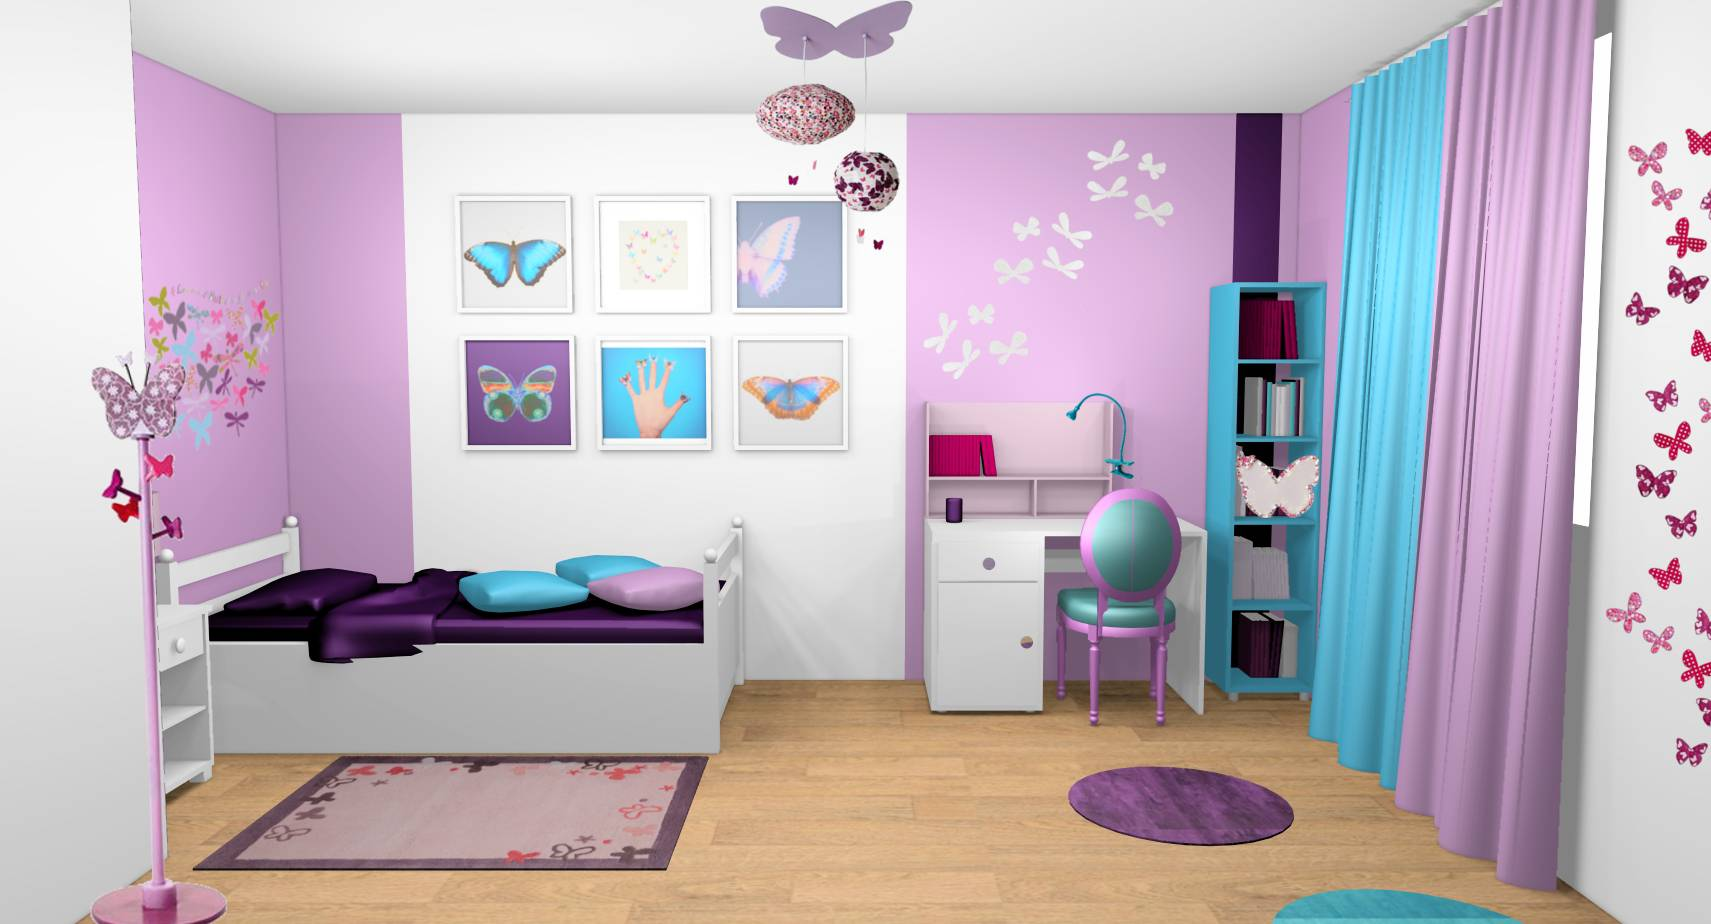 D coration d 39 int rieur d 39 une chambre de fille vaux le for Decoration chambre de fille